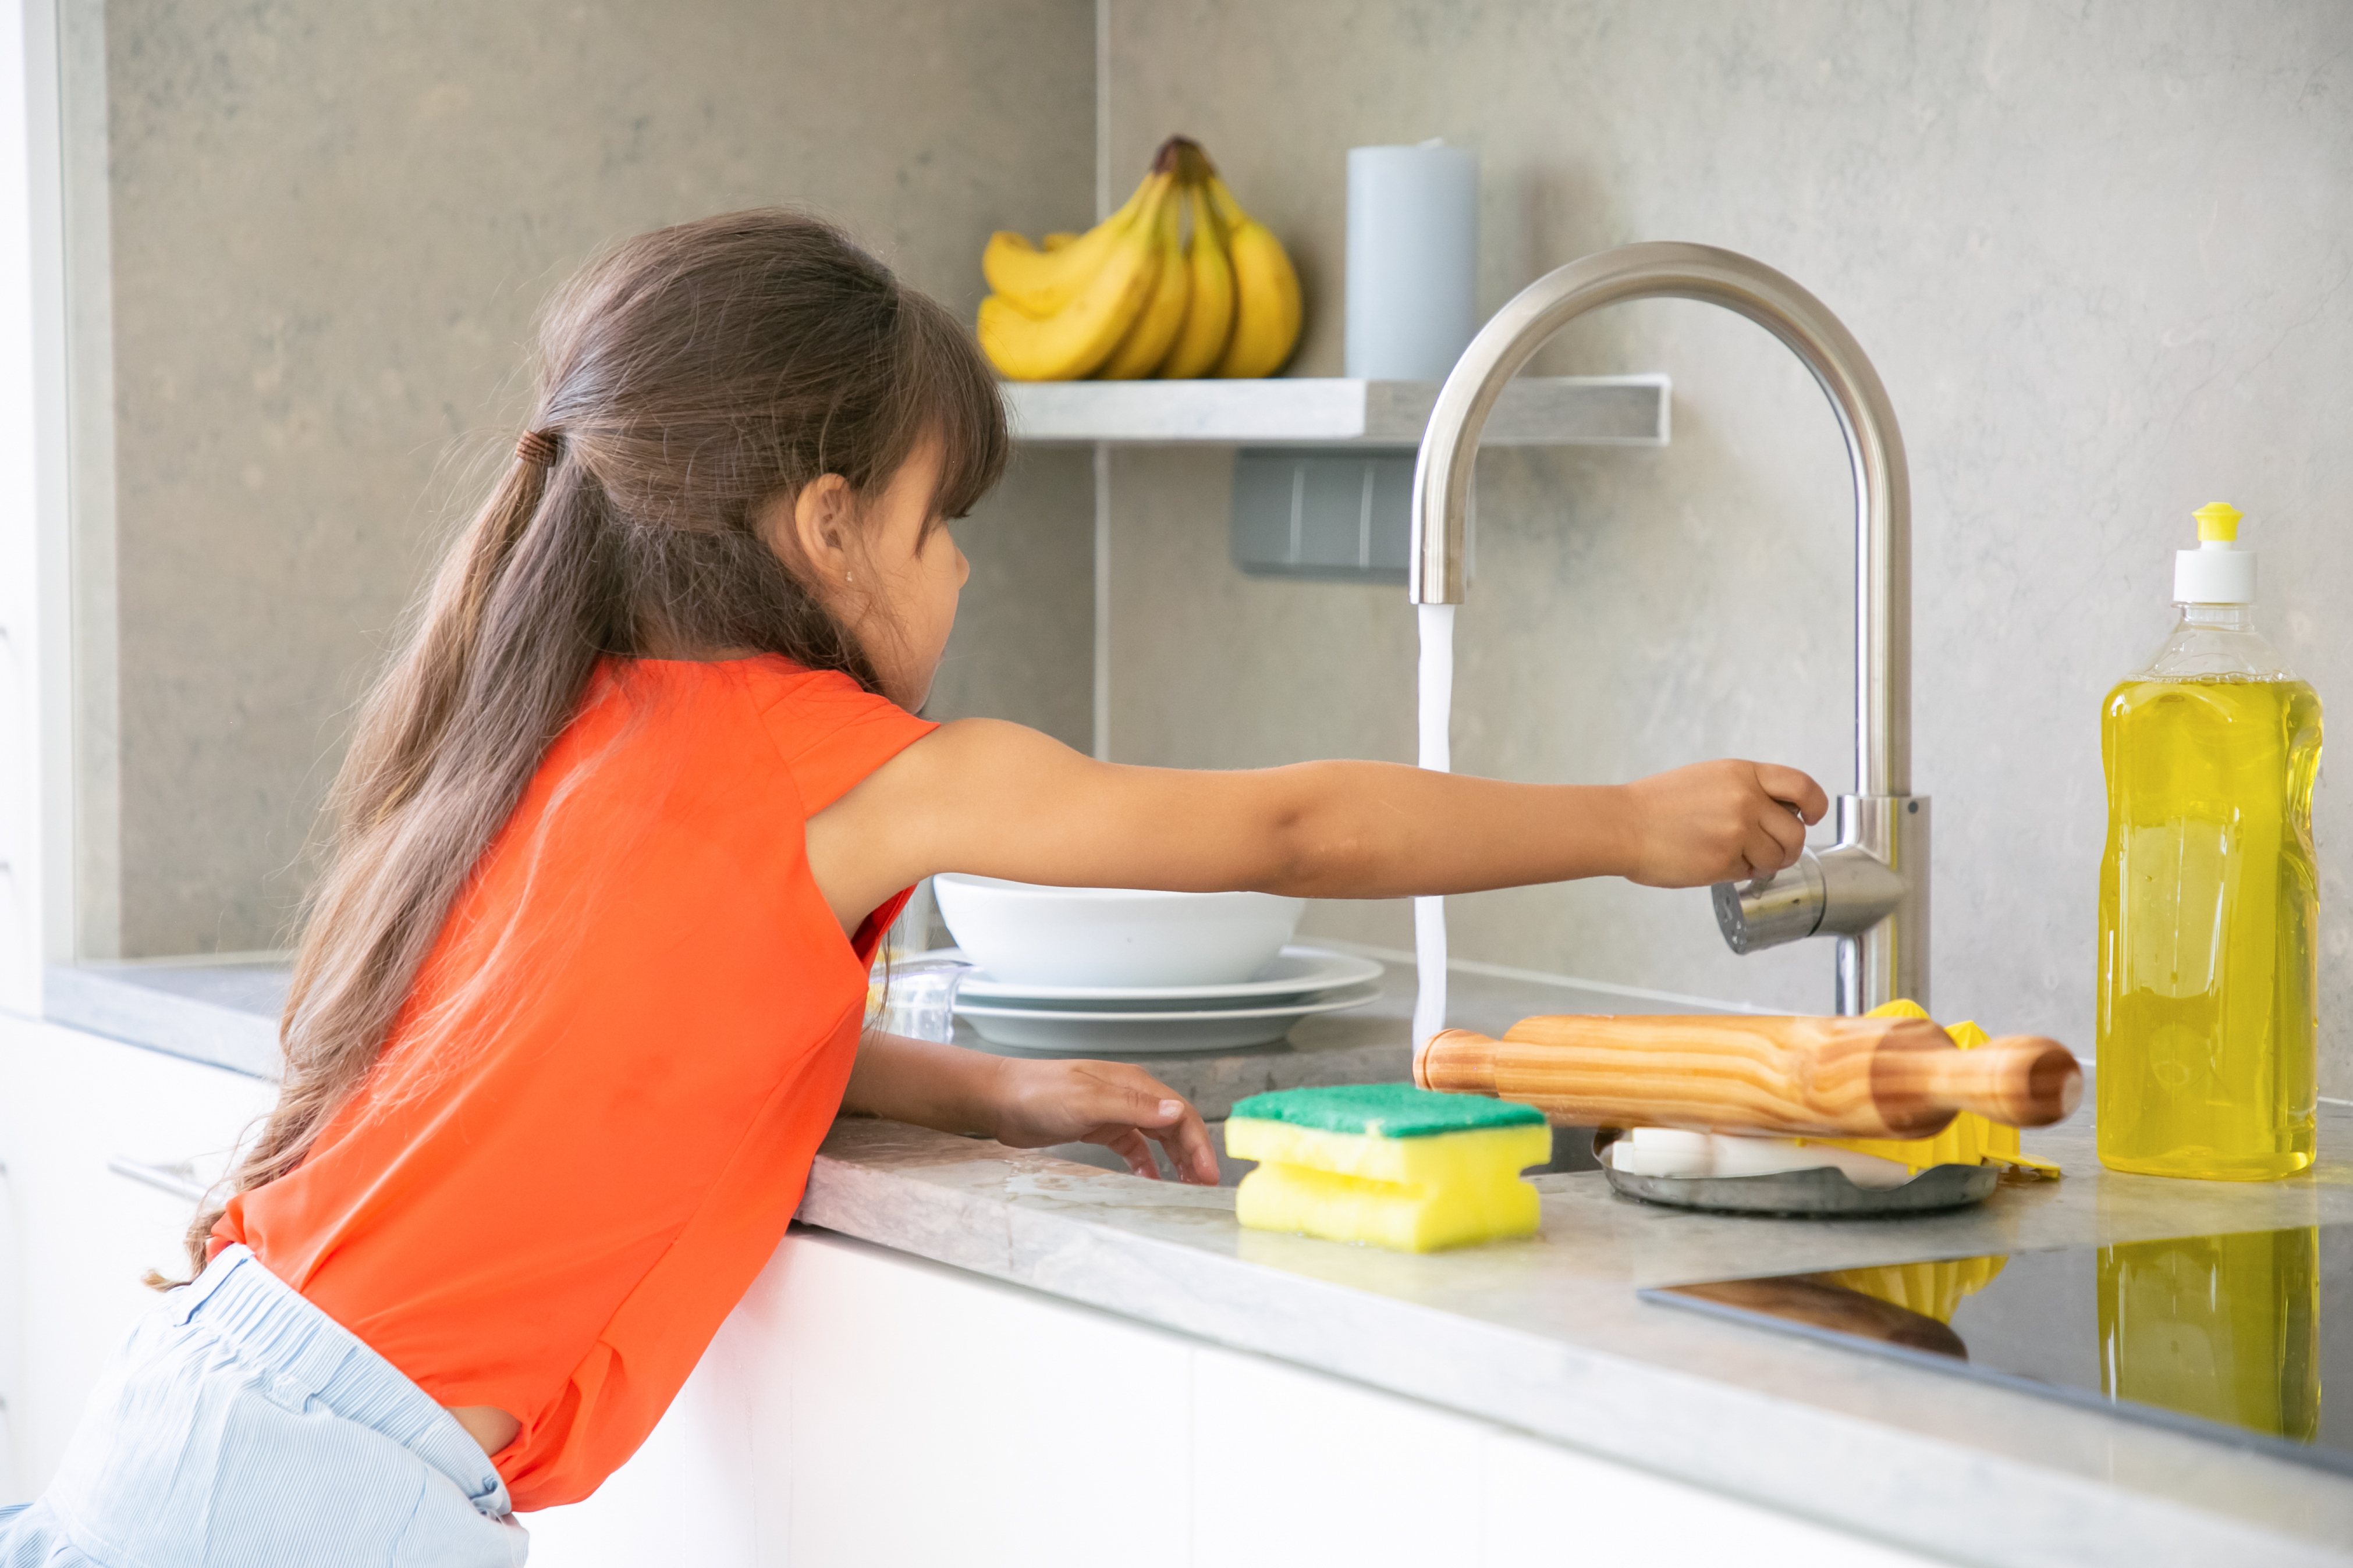 Cute little girl washing dish in kitchen by herself